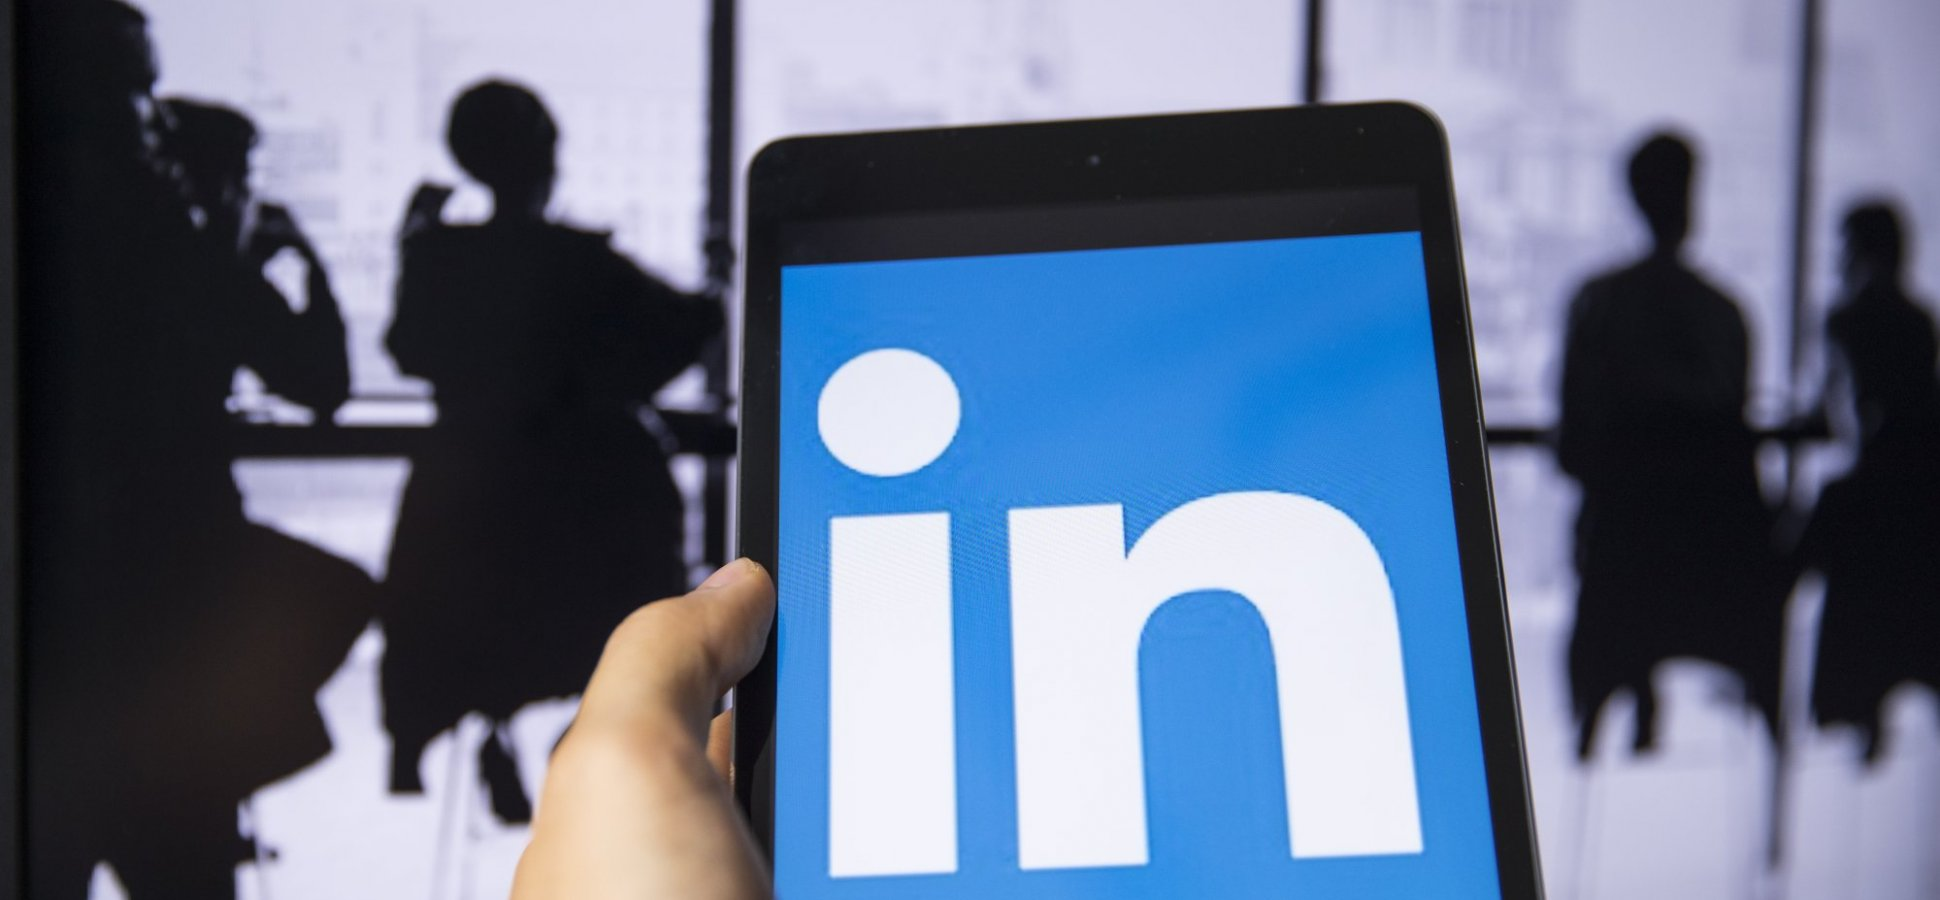 1 Simple Strategy That Will Skyrocket Your Engagement on LinkedIn